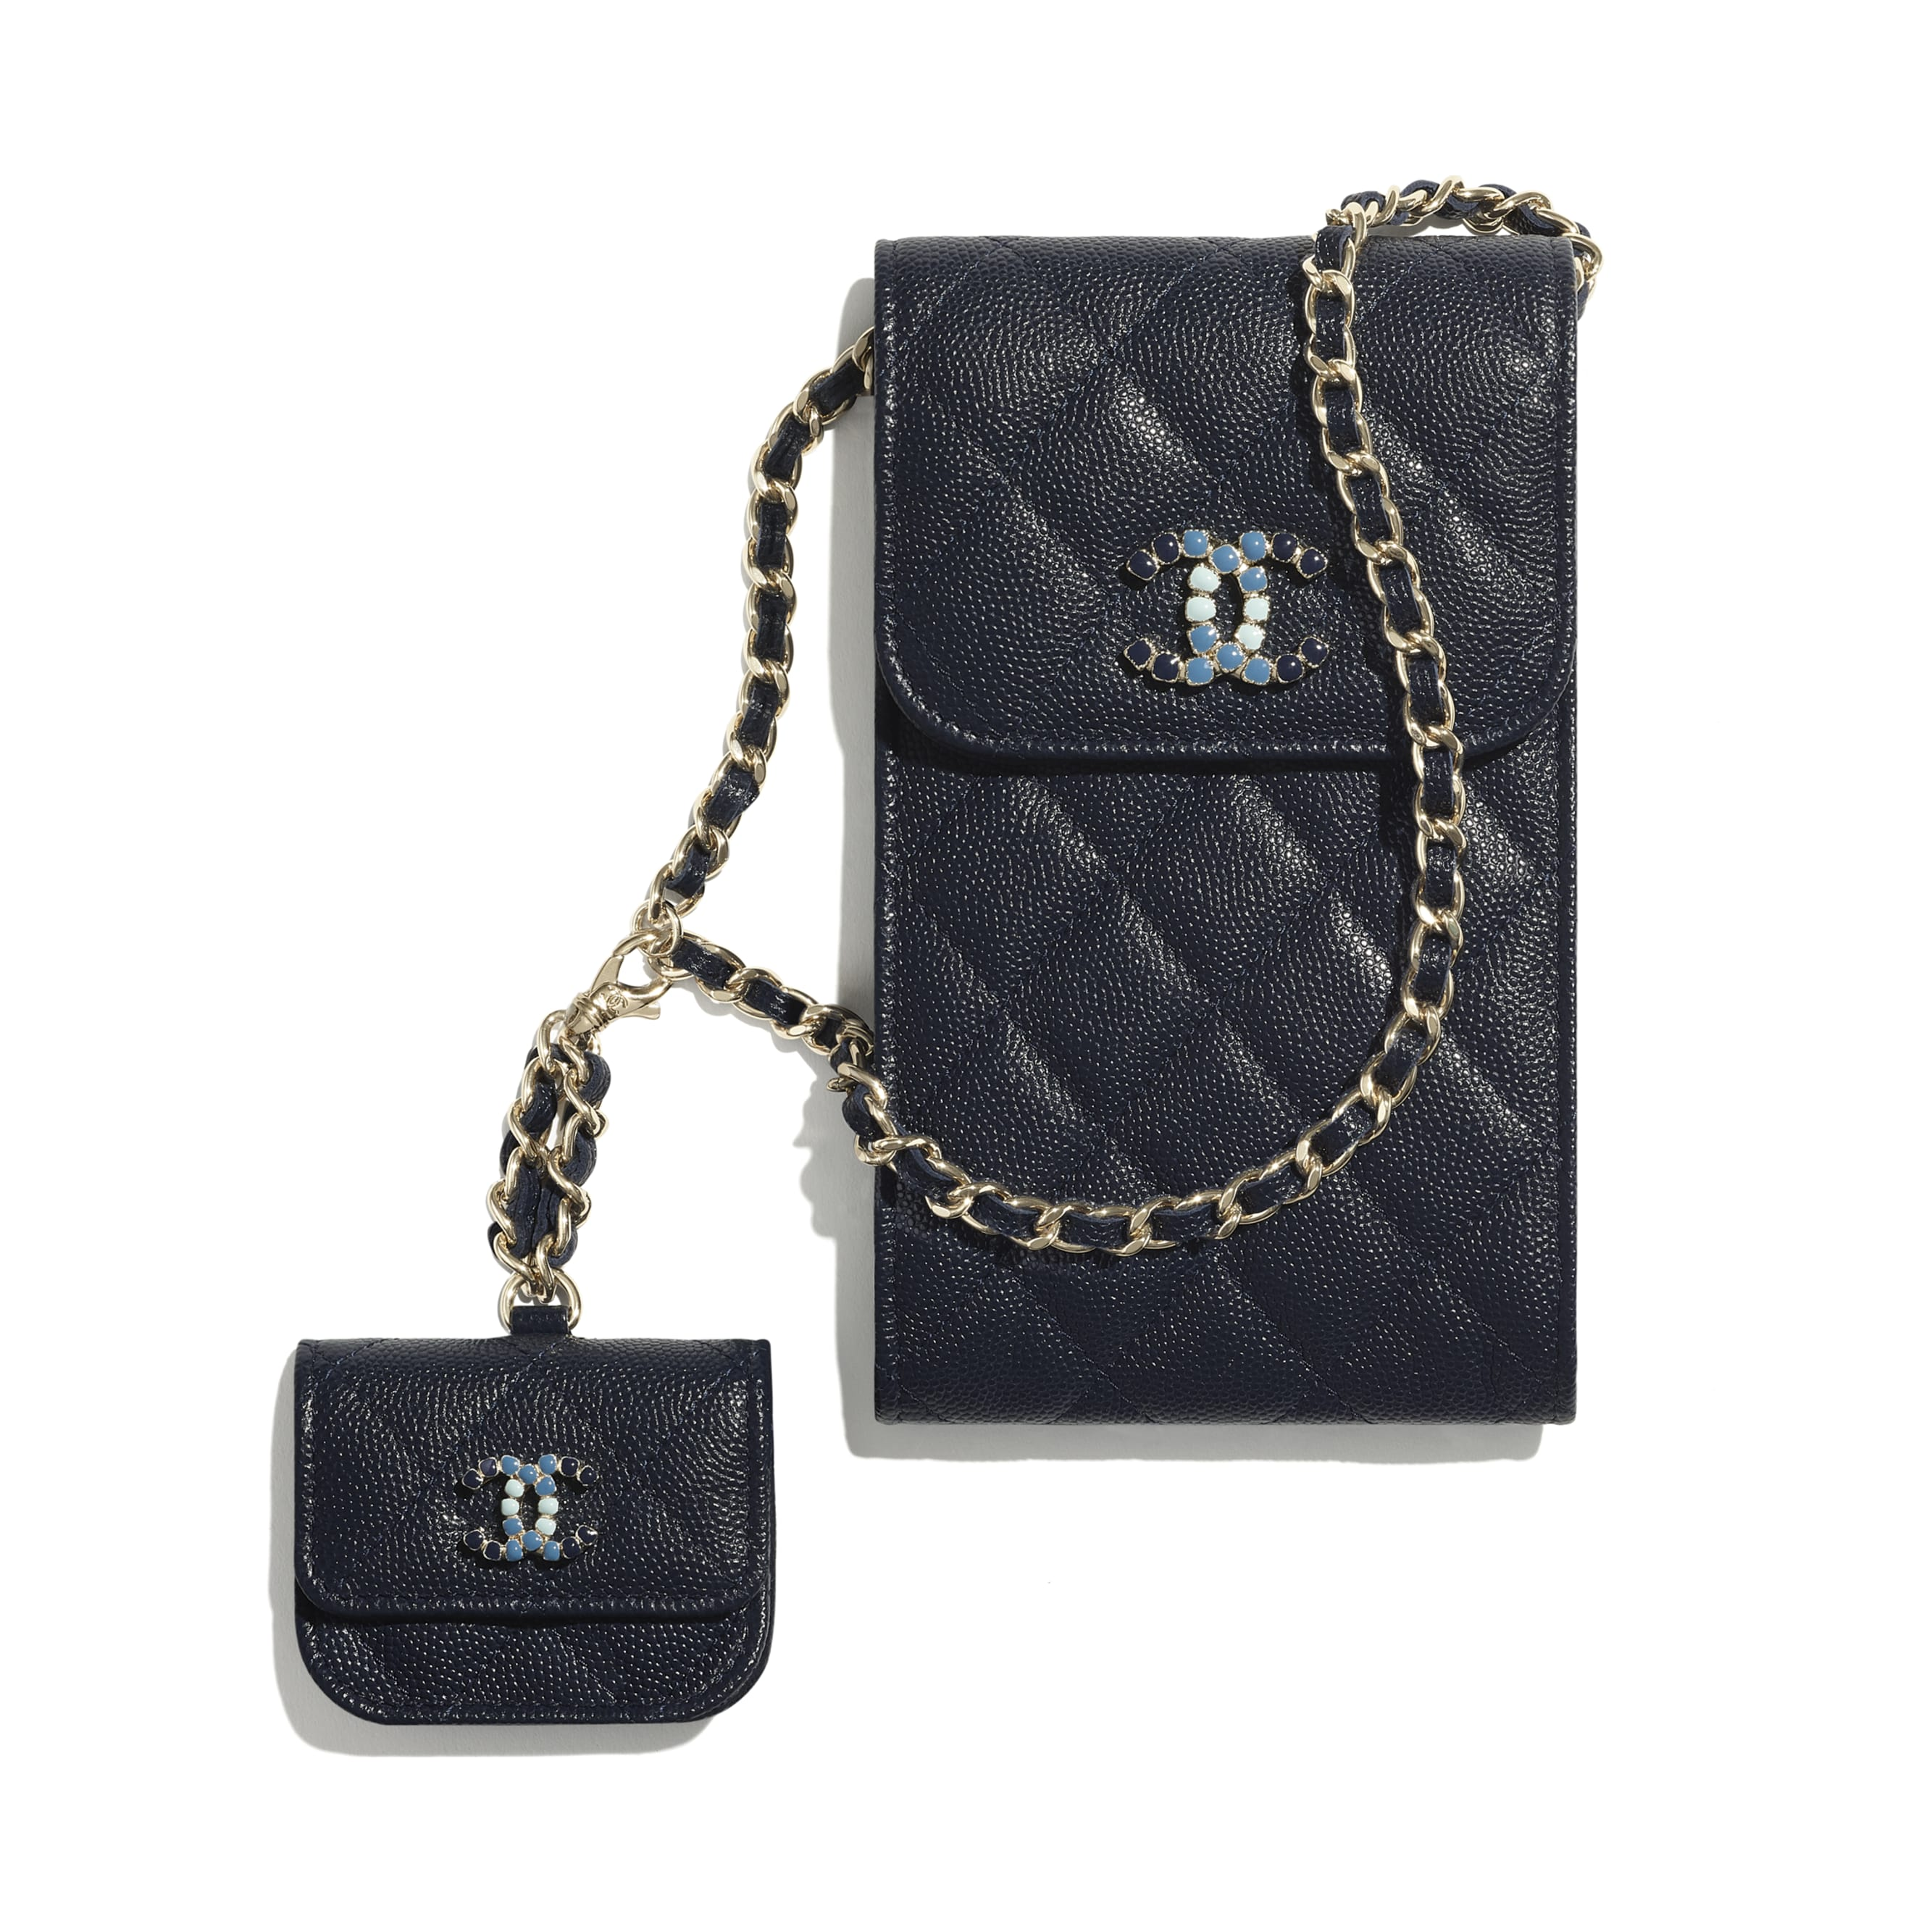 Phone & Airpods Case with Chain - Navy Blue - Grained Calfskin & Laquered Gold-Tone Metal - CHANEL - Default view - see standard sized version